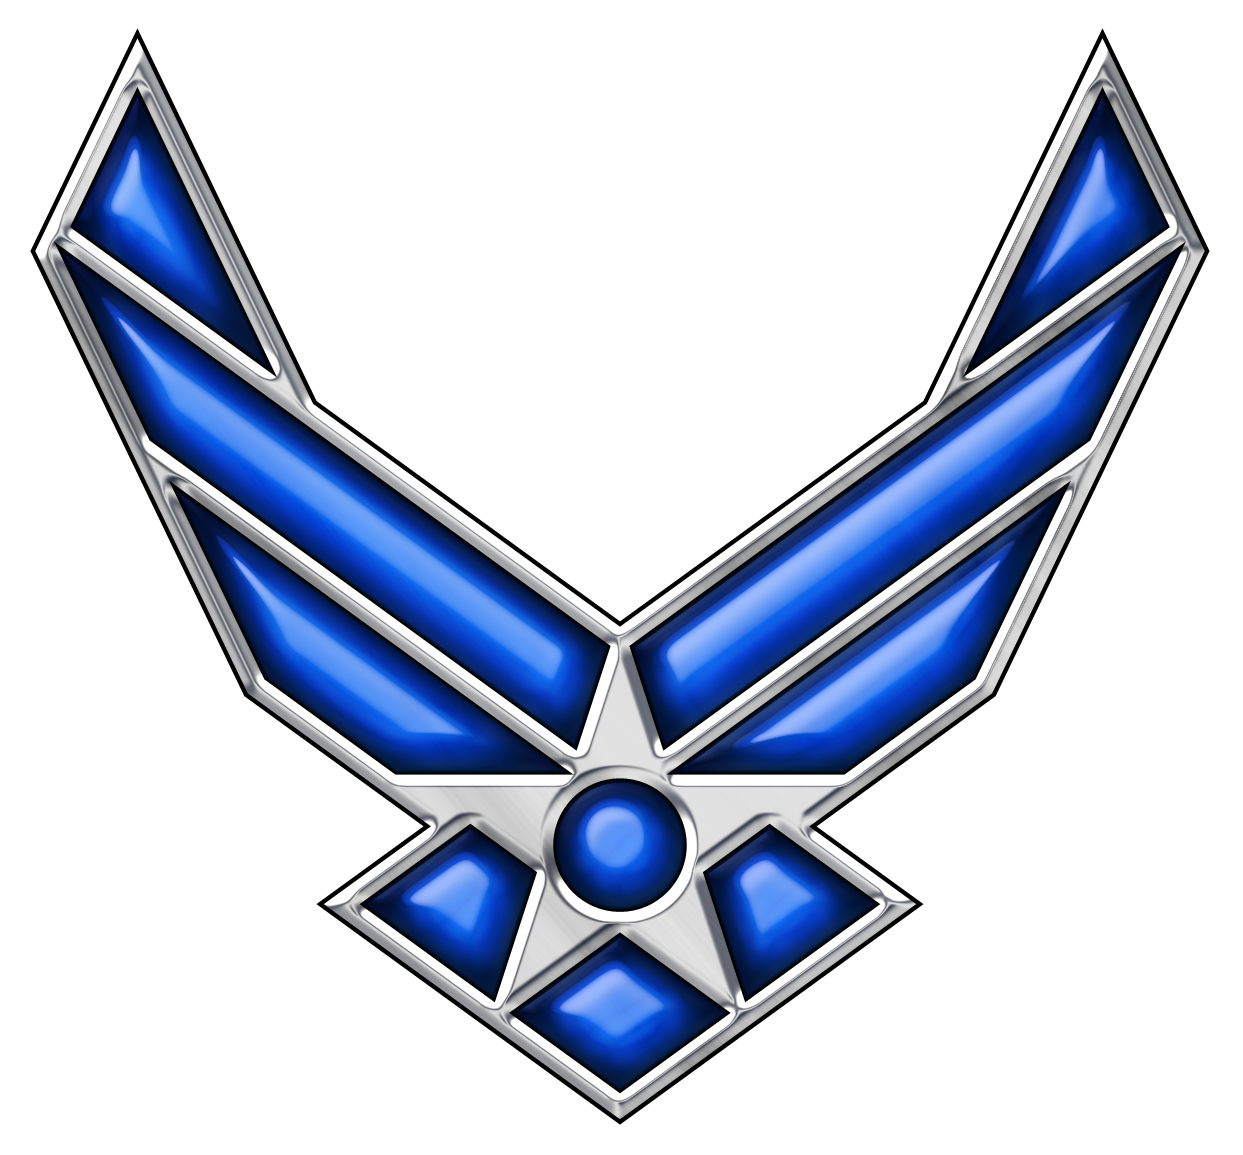 Air force symbol png. Logo transparent pictures free